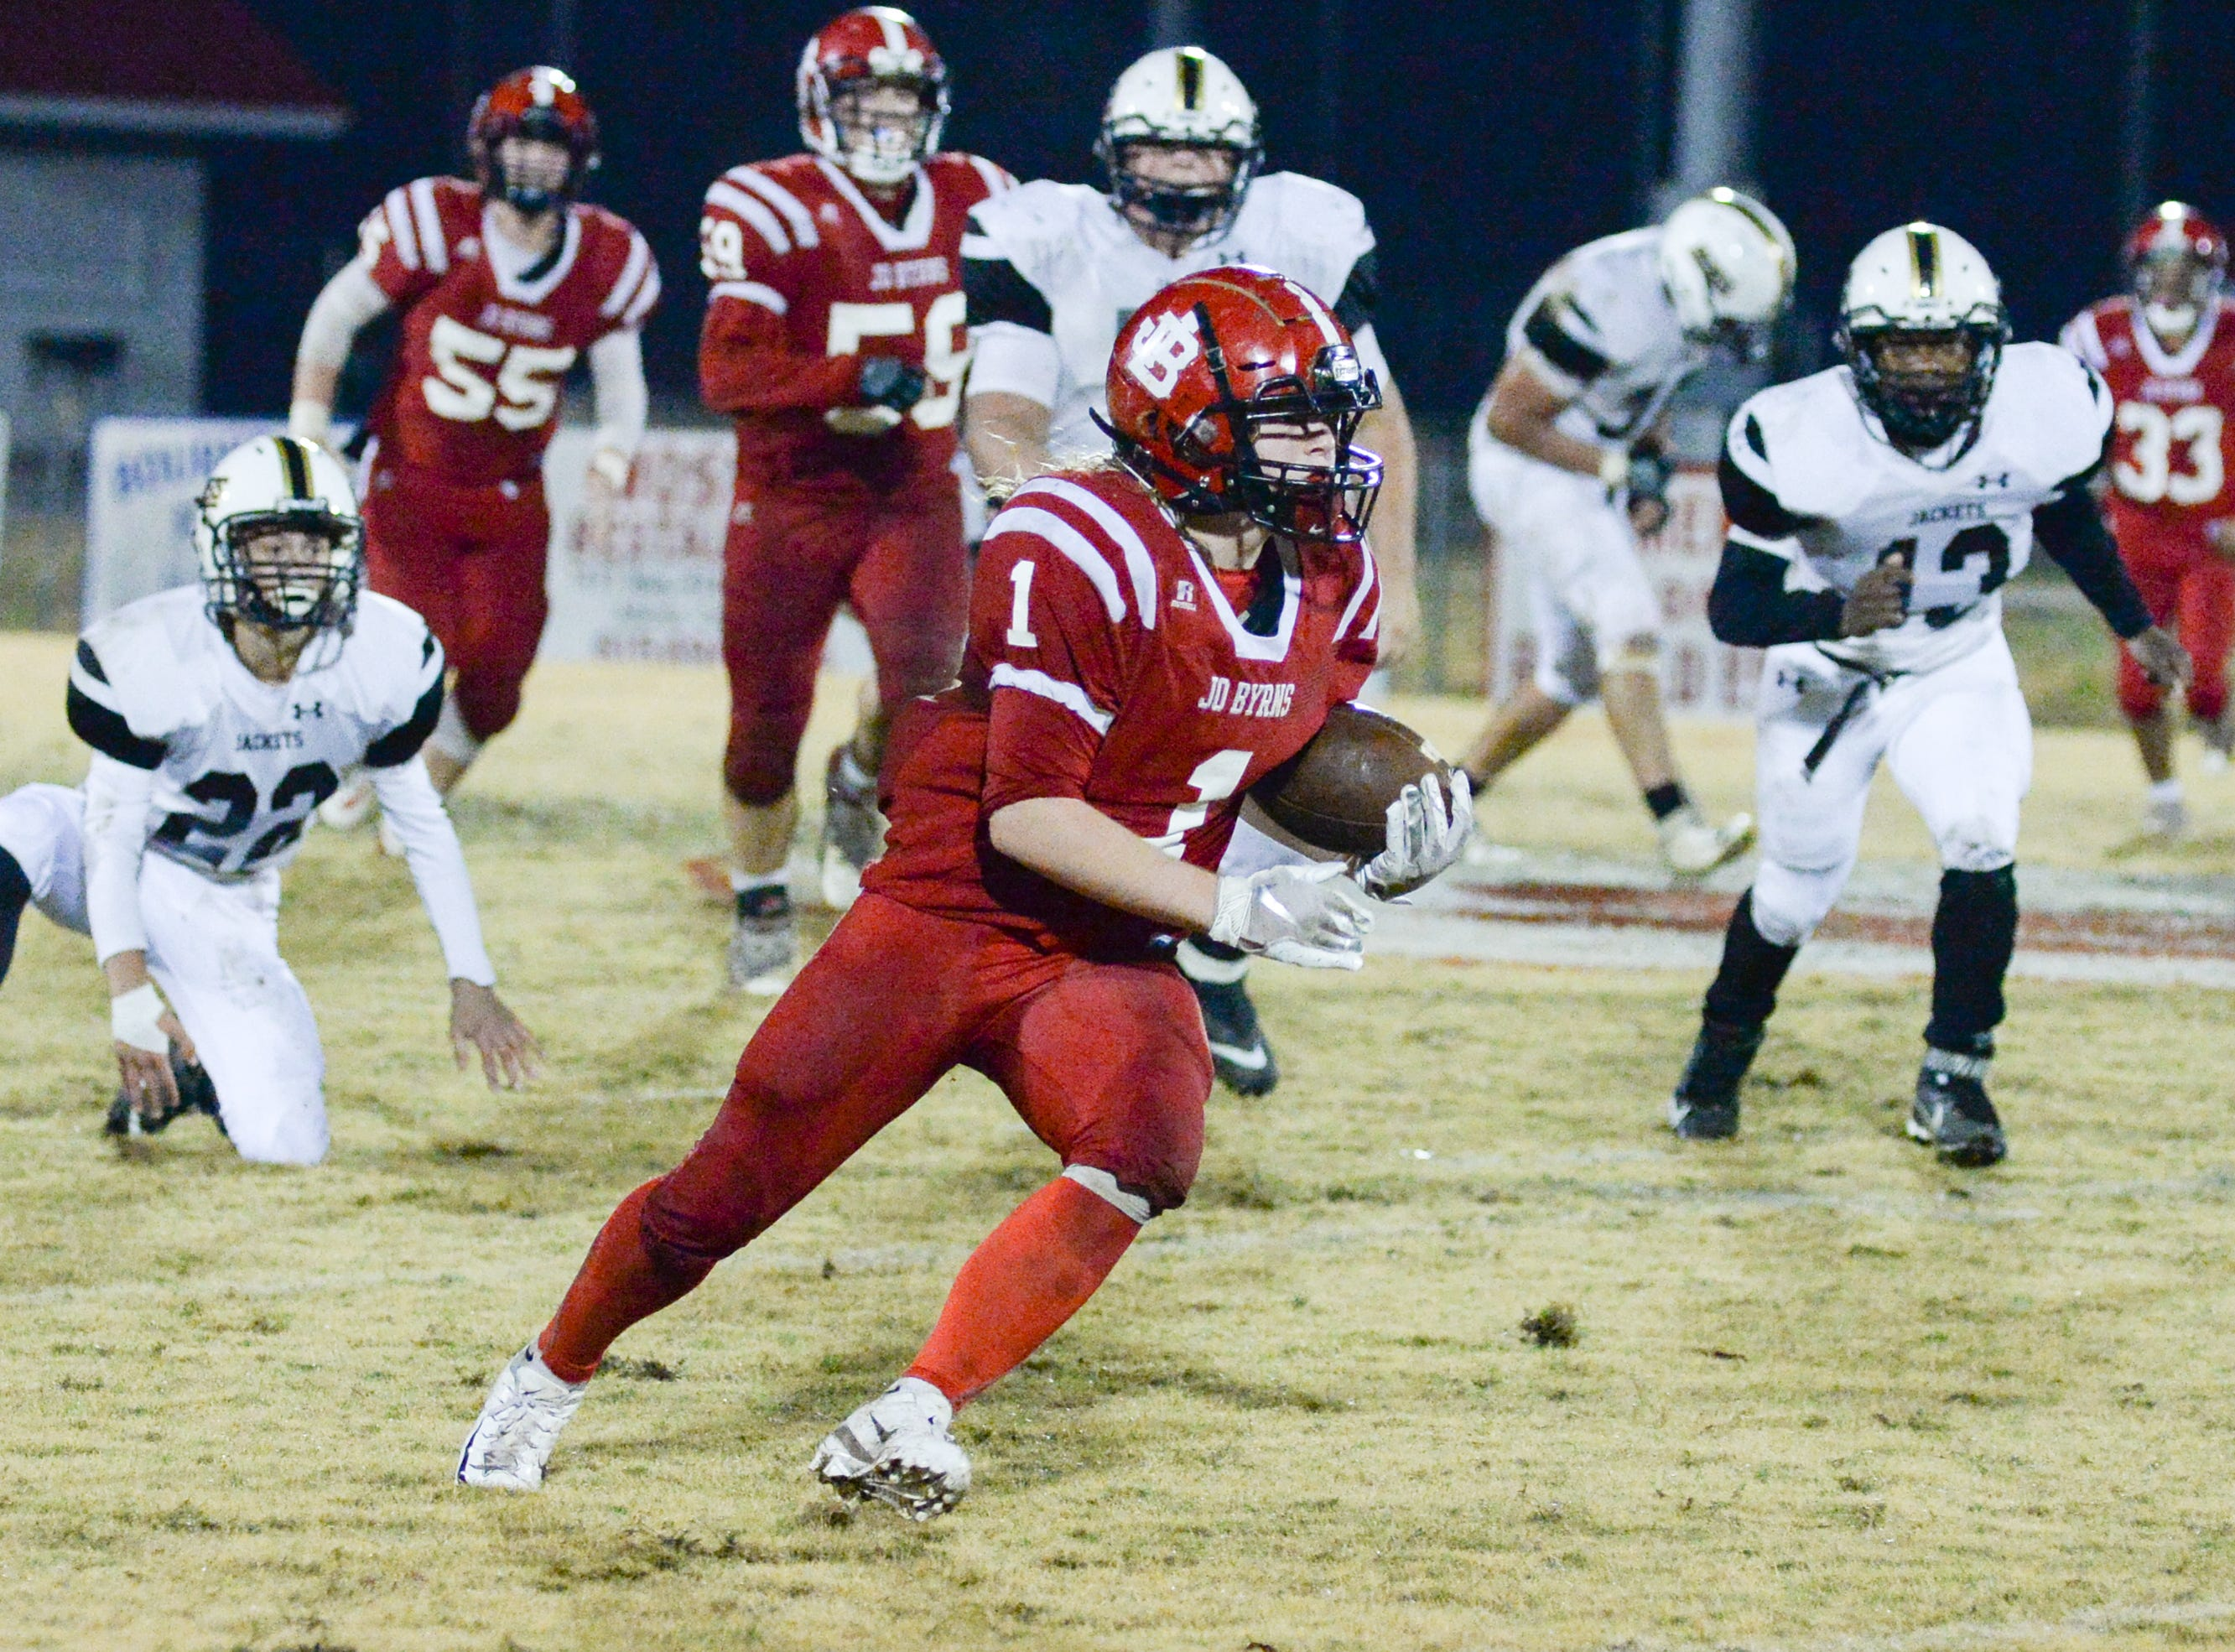 Jo Byrns High School player Jacob Barnhart looks for a way past the defense of Lookout Valley at Jo Byrns High School on Friday, Nov. 2.